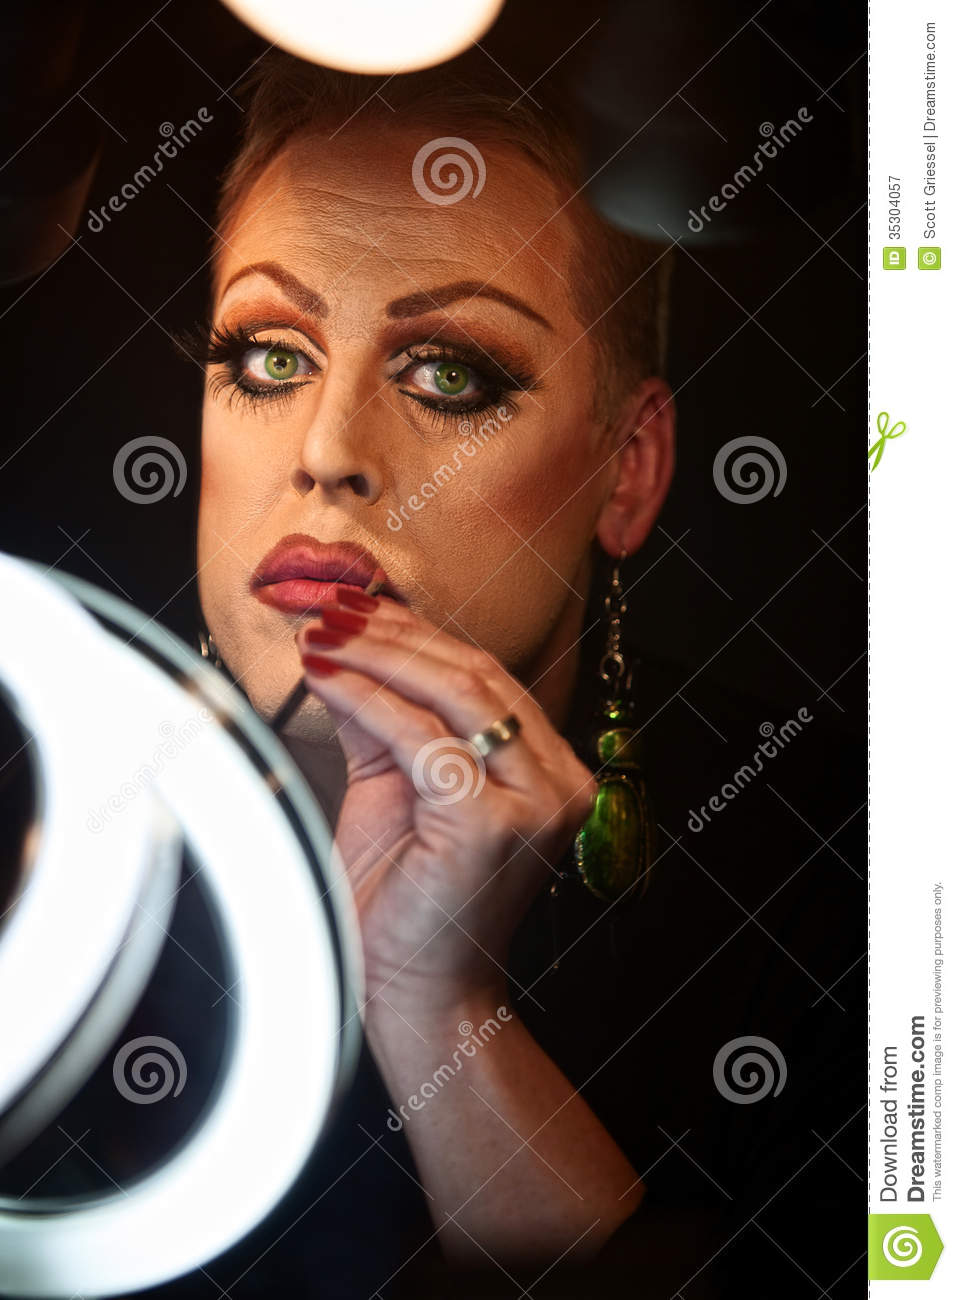 Drag queen using lipstick royalty free stock photography - image: 35304057.